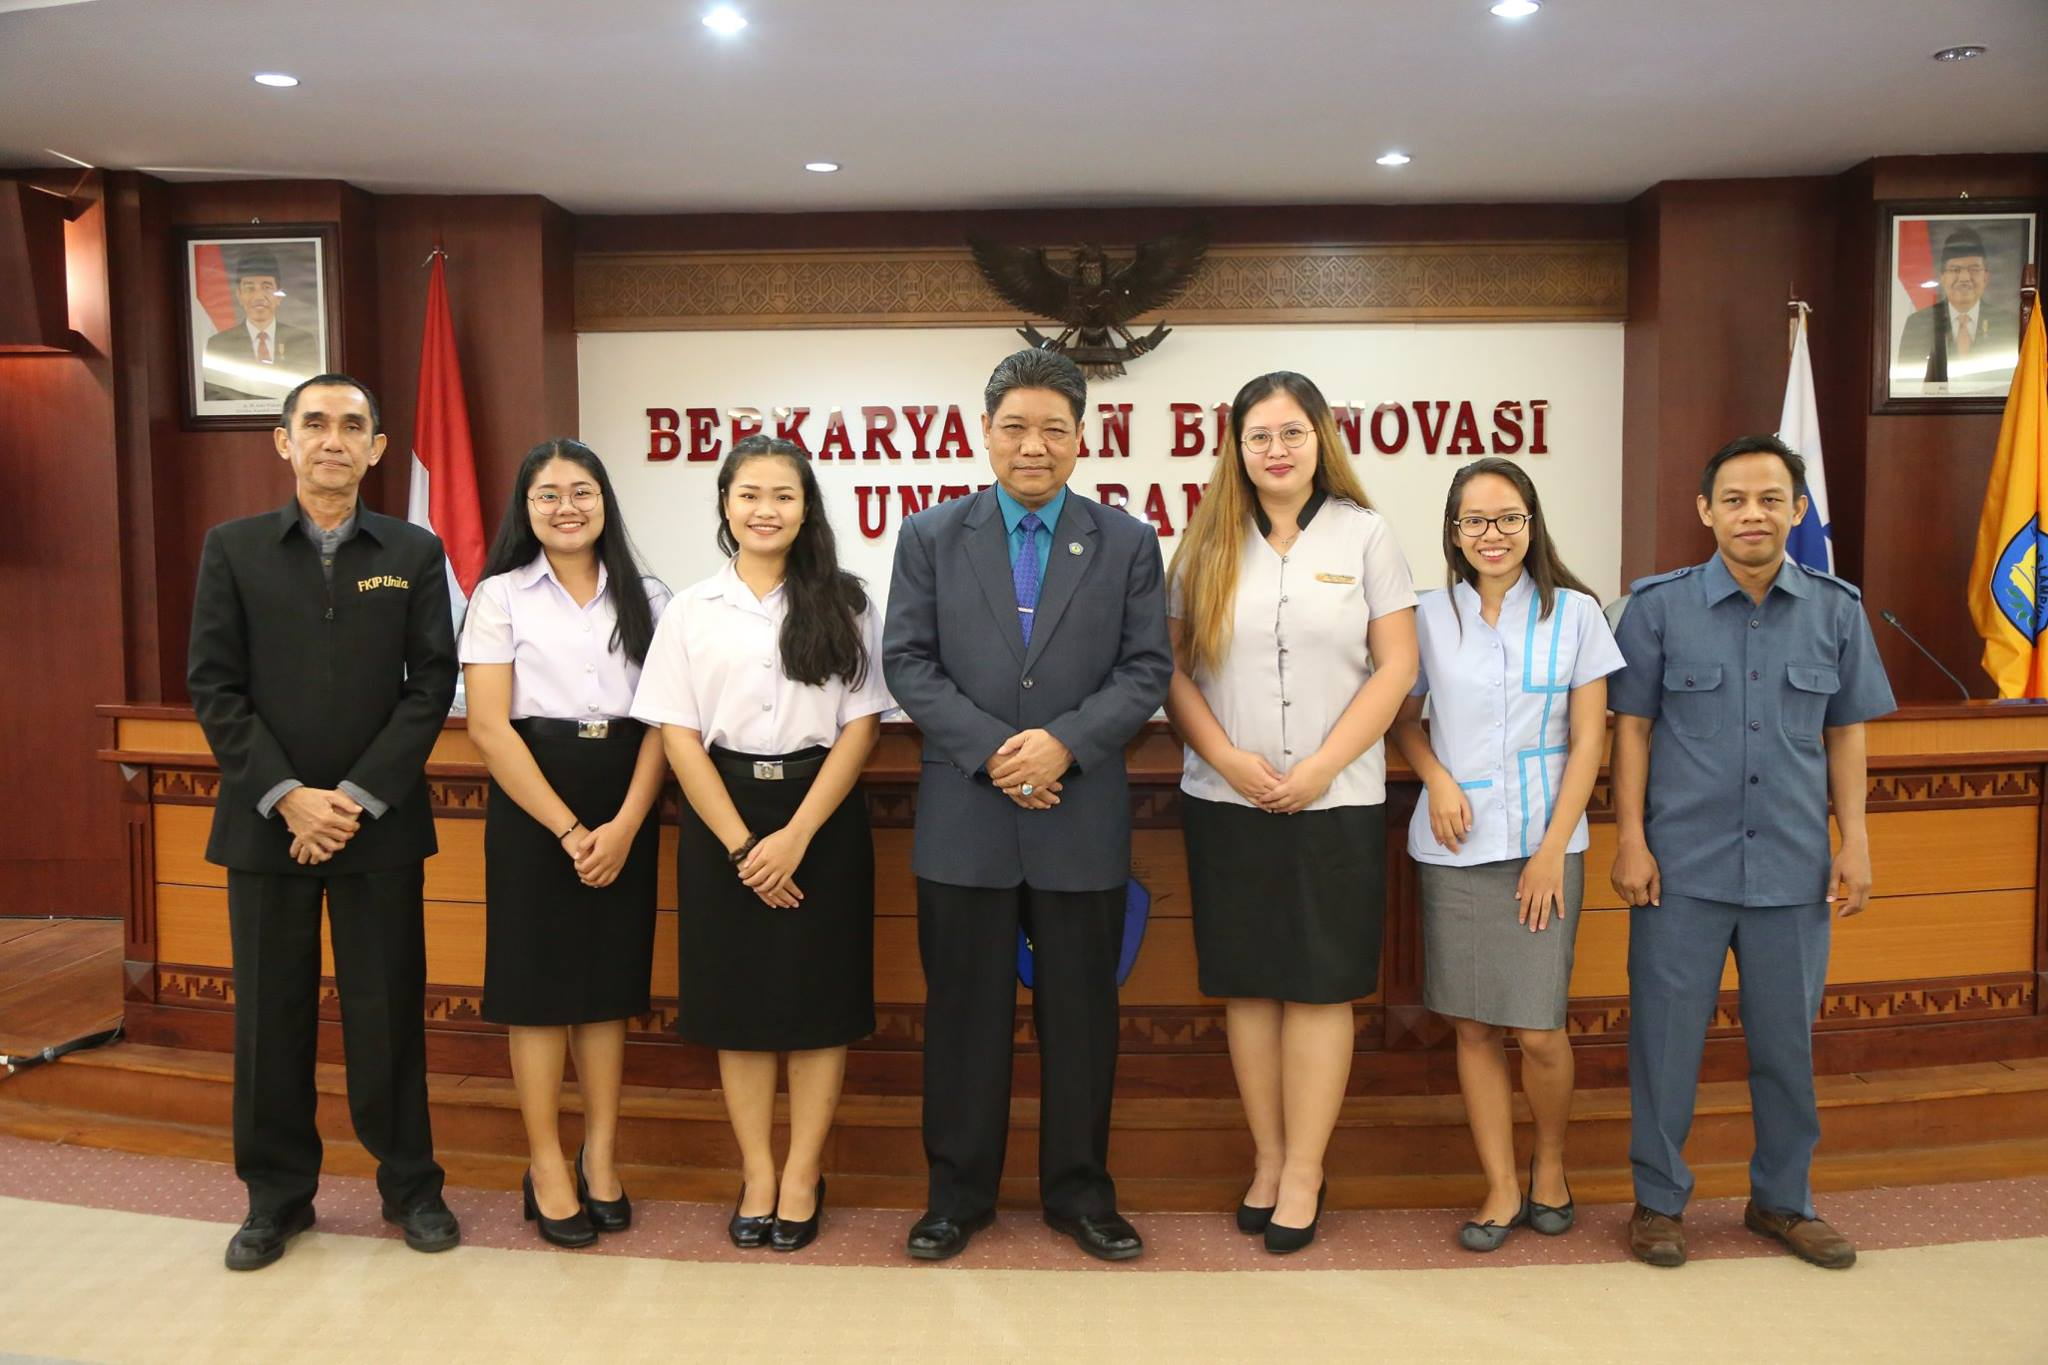 7 th year, Unila welcomed the delegation of SEA Teacher Program Batch 7